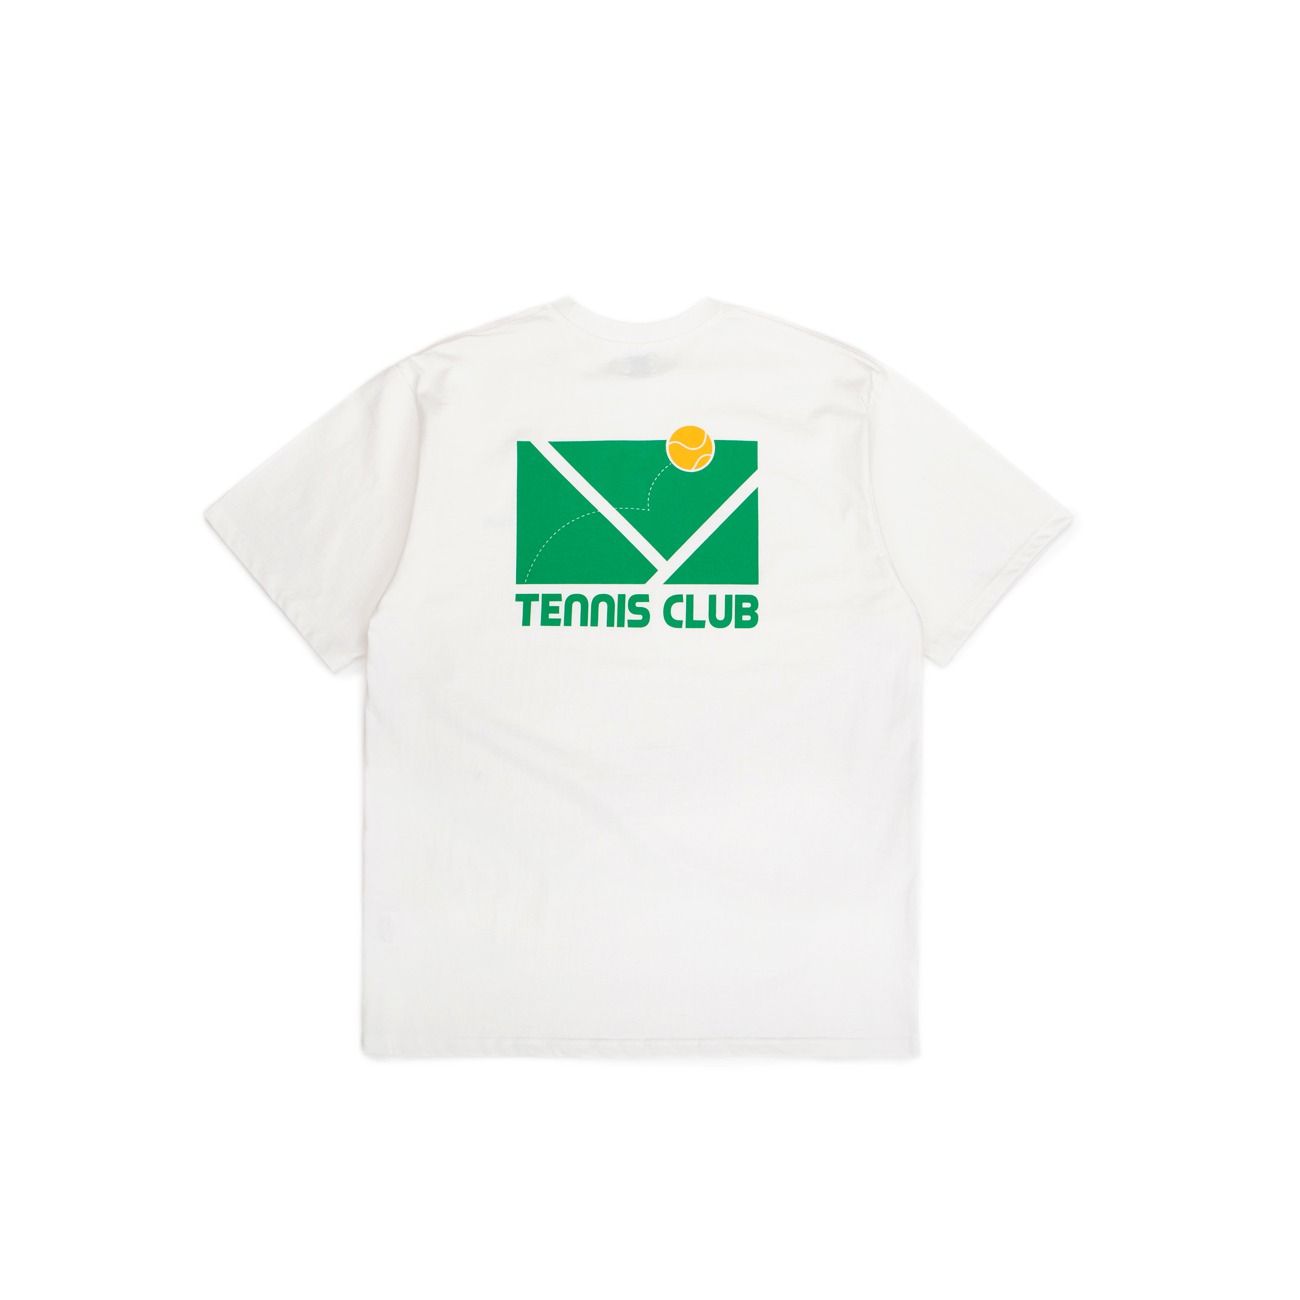 Tennis Club T-Shirts